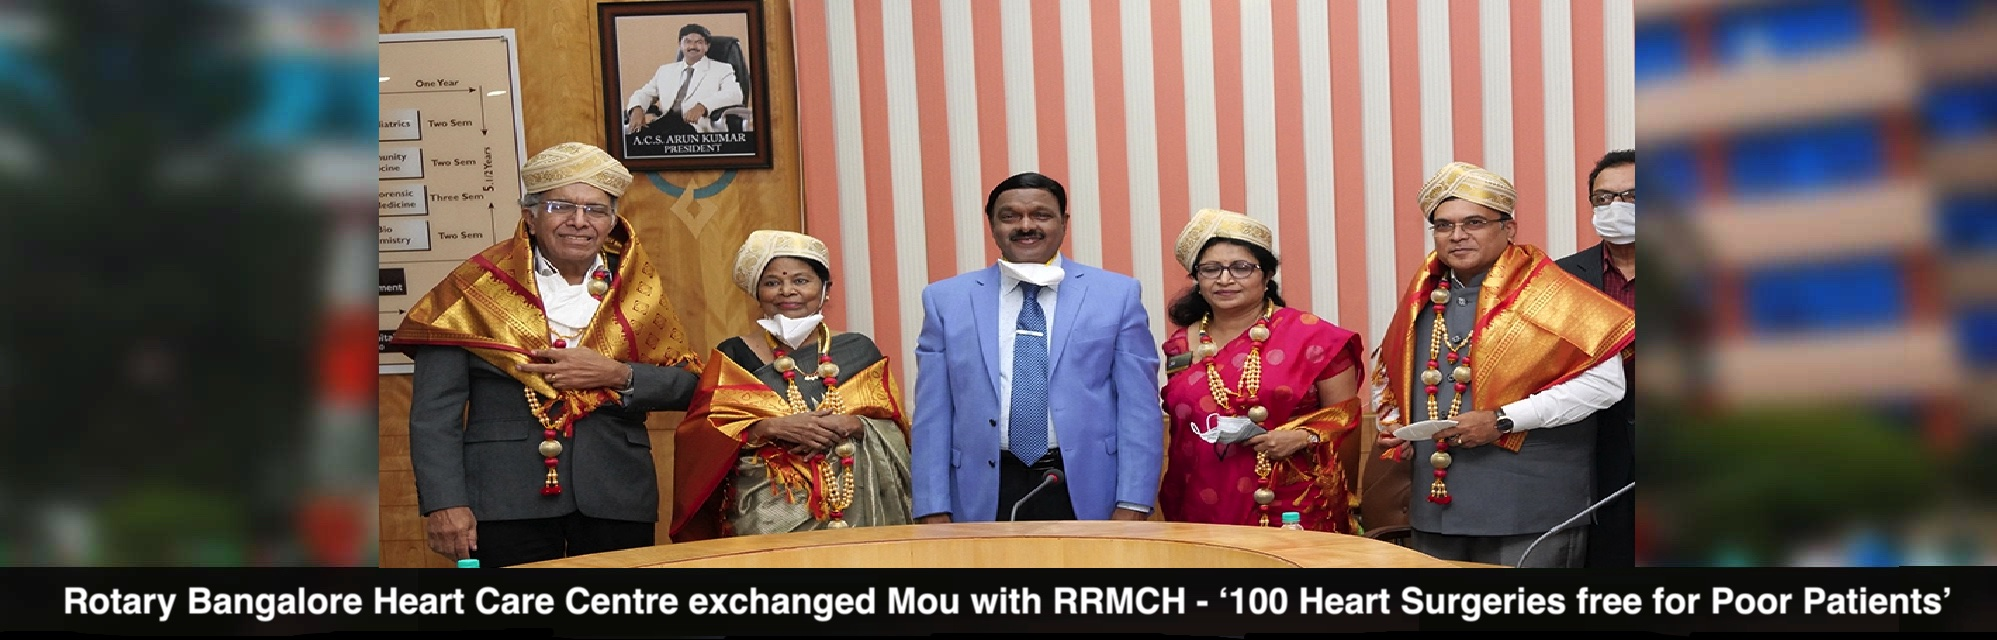 Rotary-MOU-with-RRMCH-2